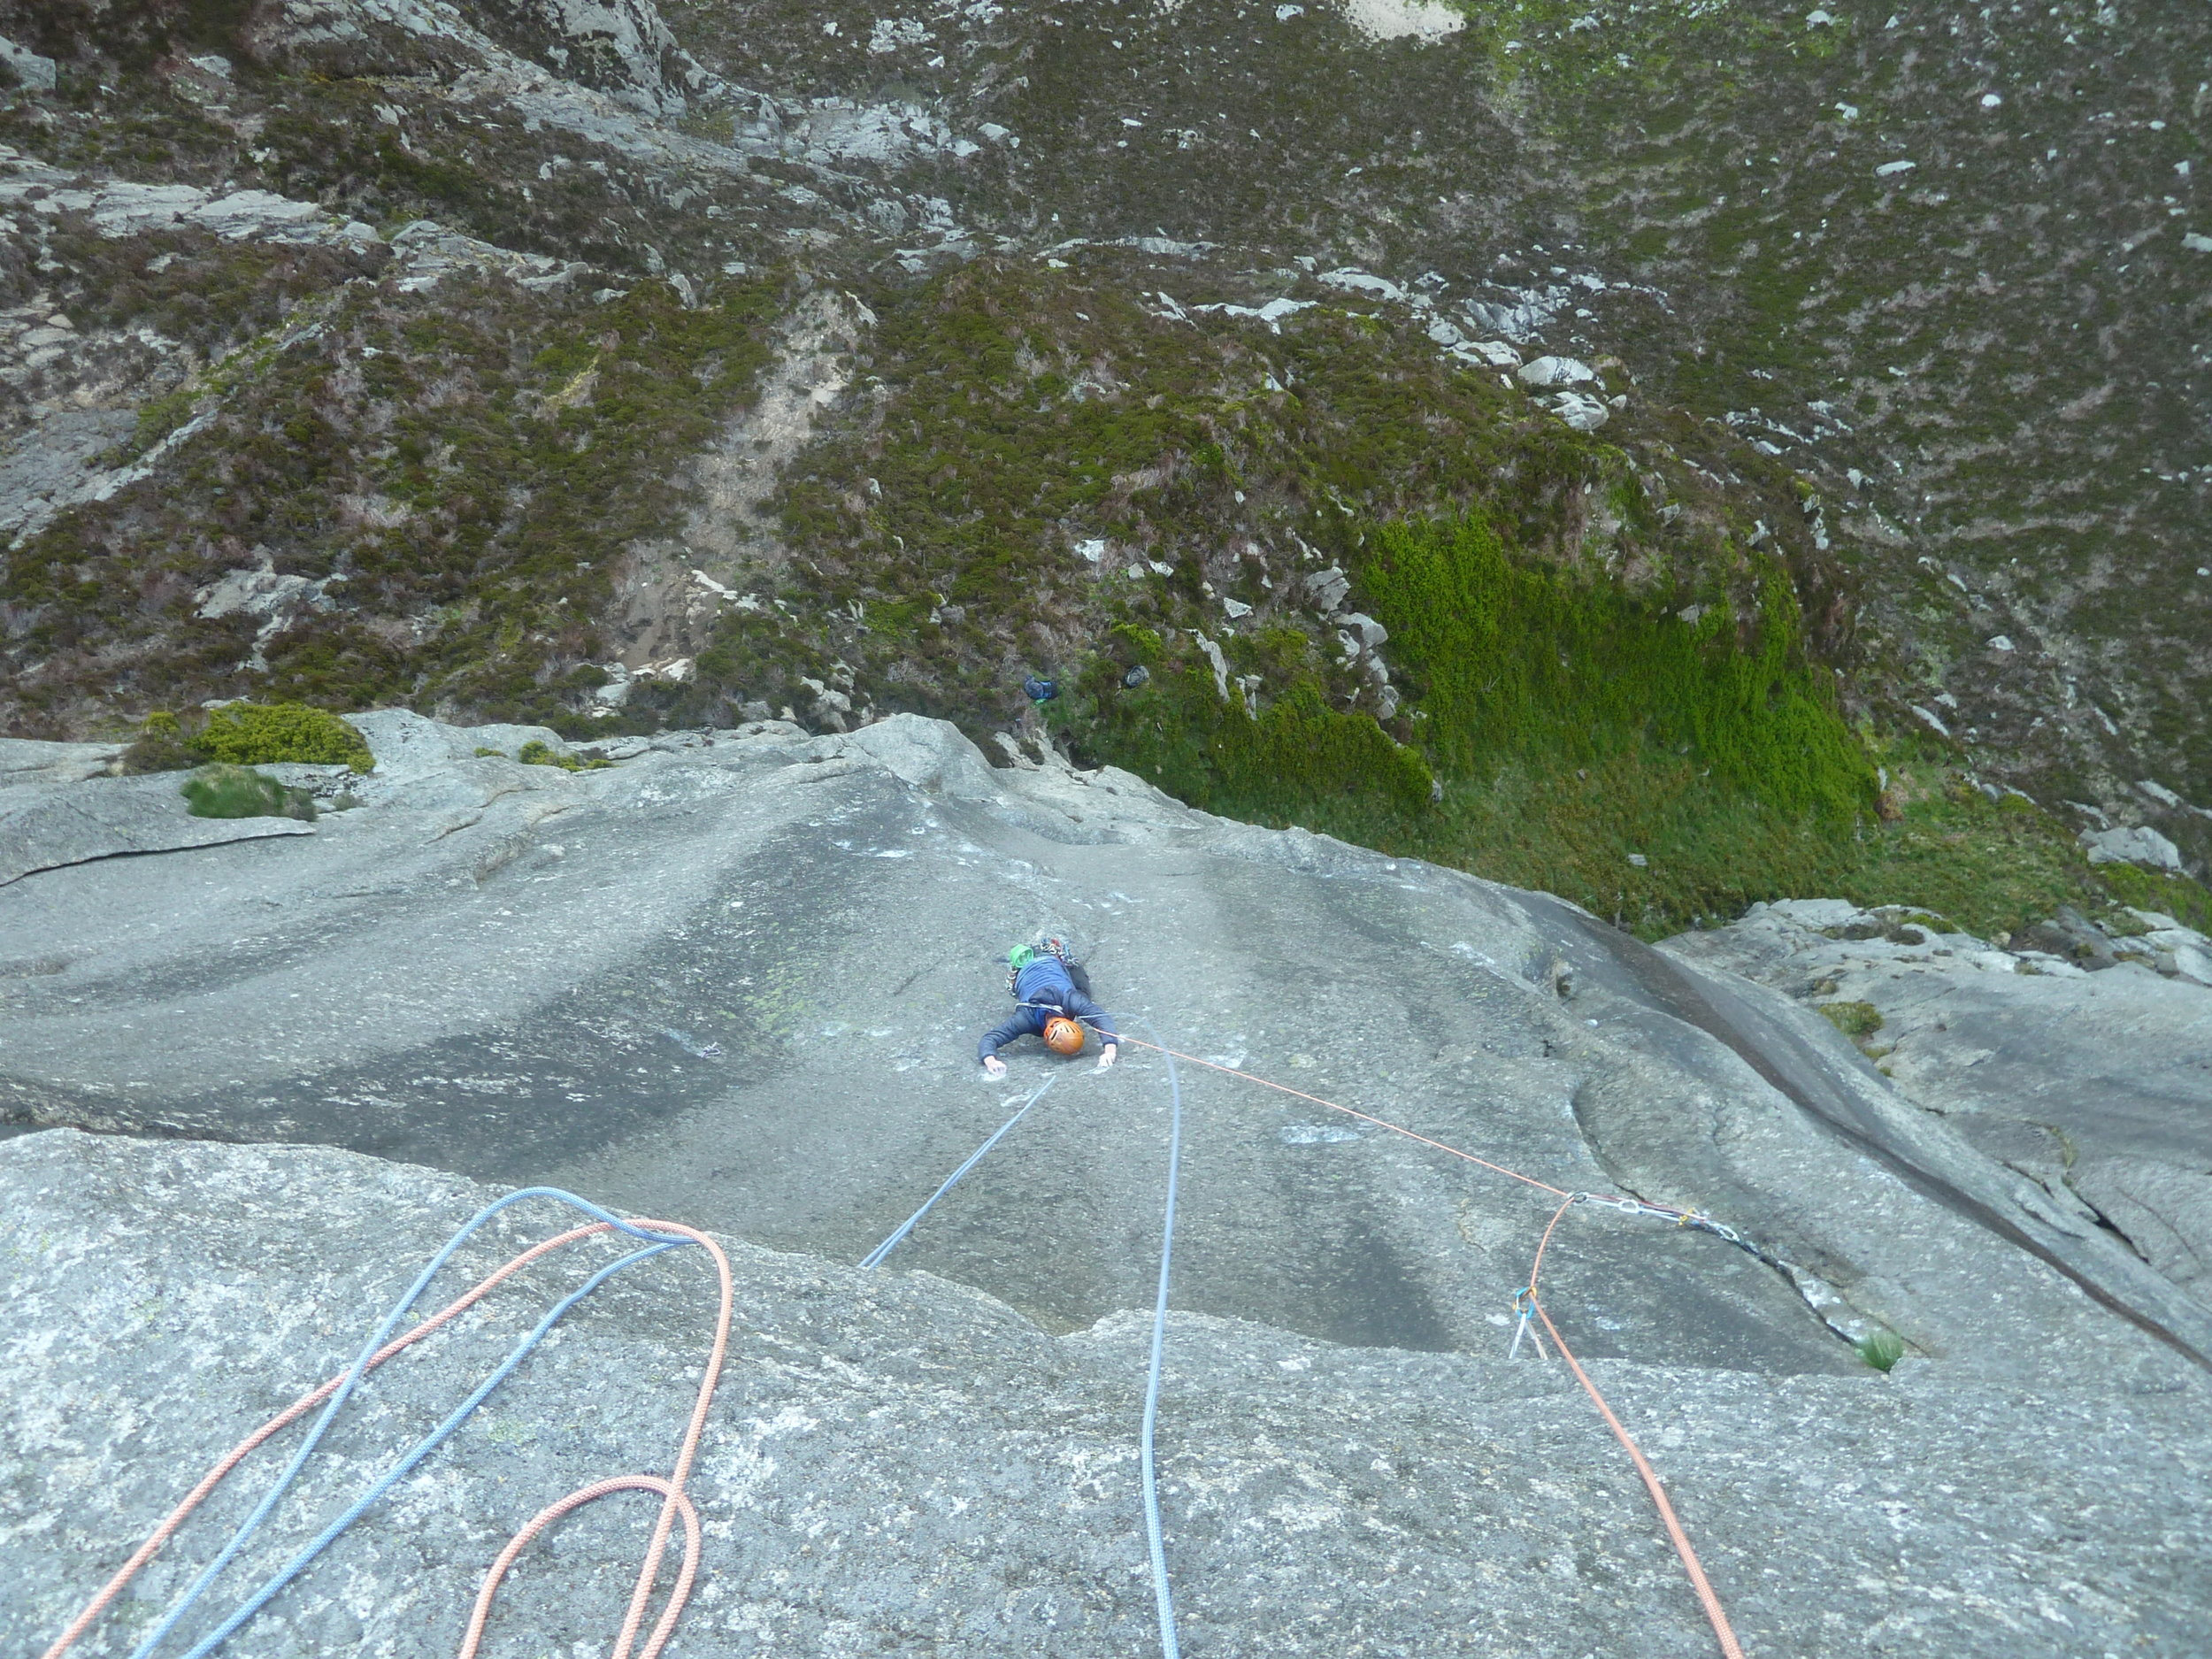 Dan McManus seconding the Pitch 2 of The Great Escape (E8 6c), Arran.